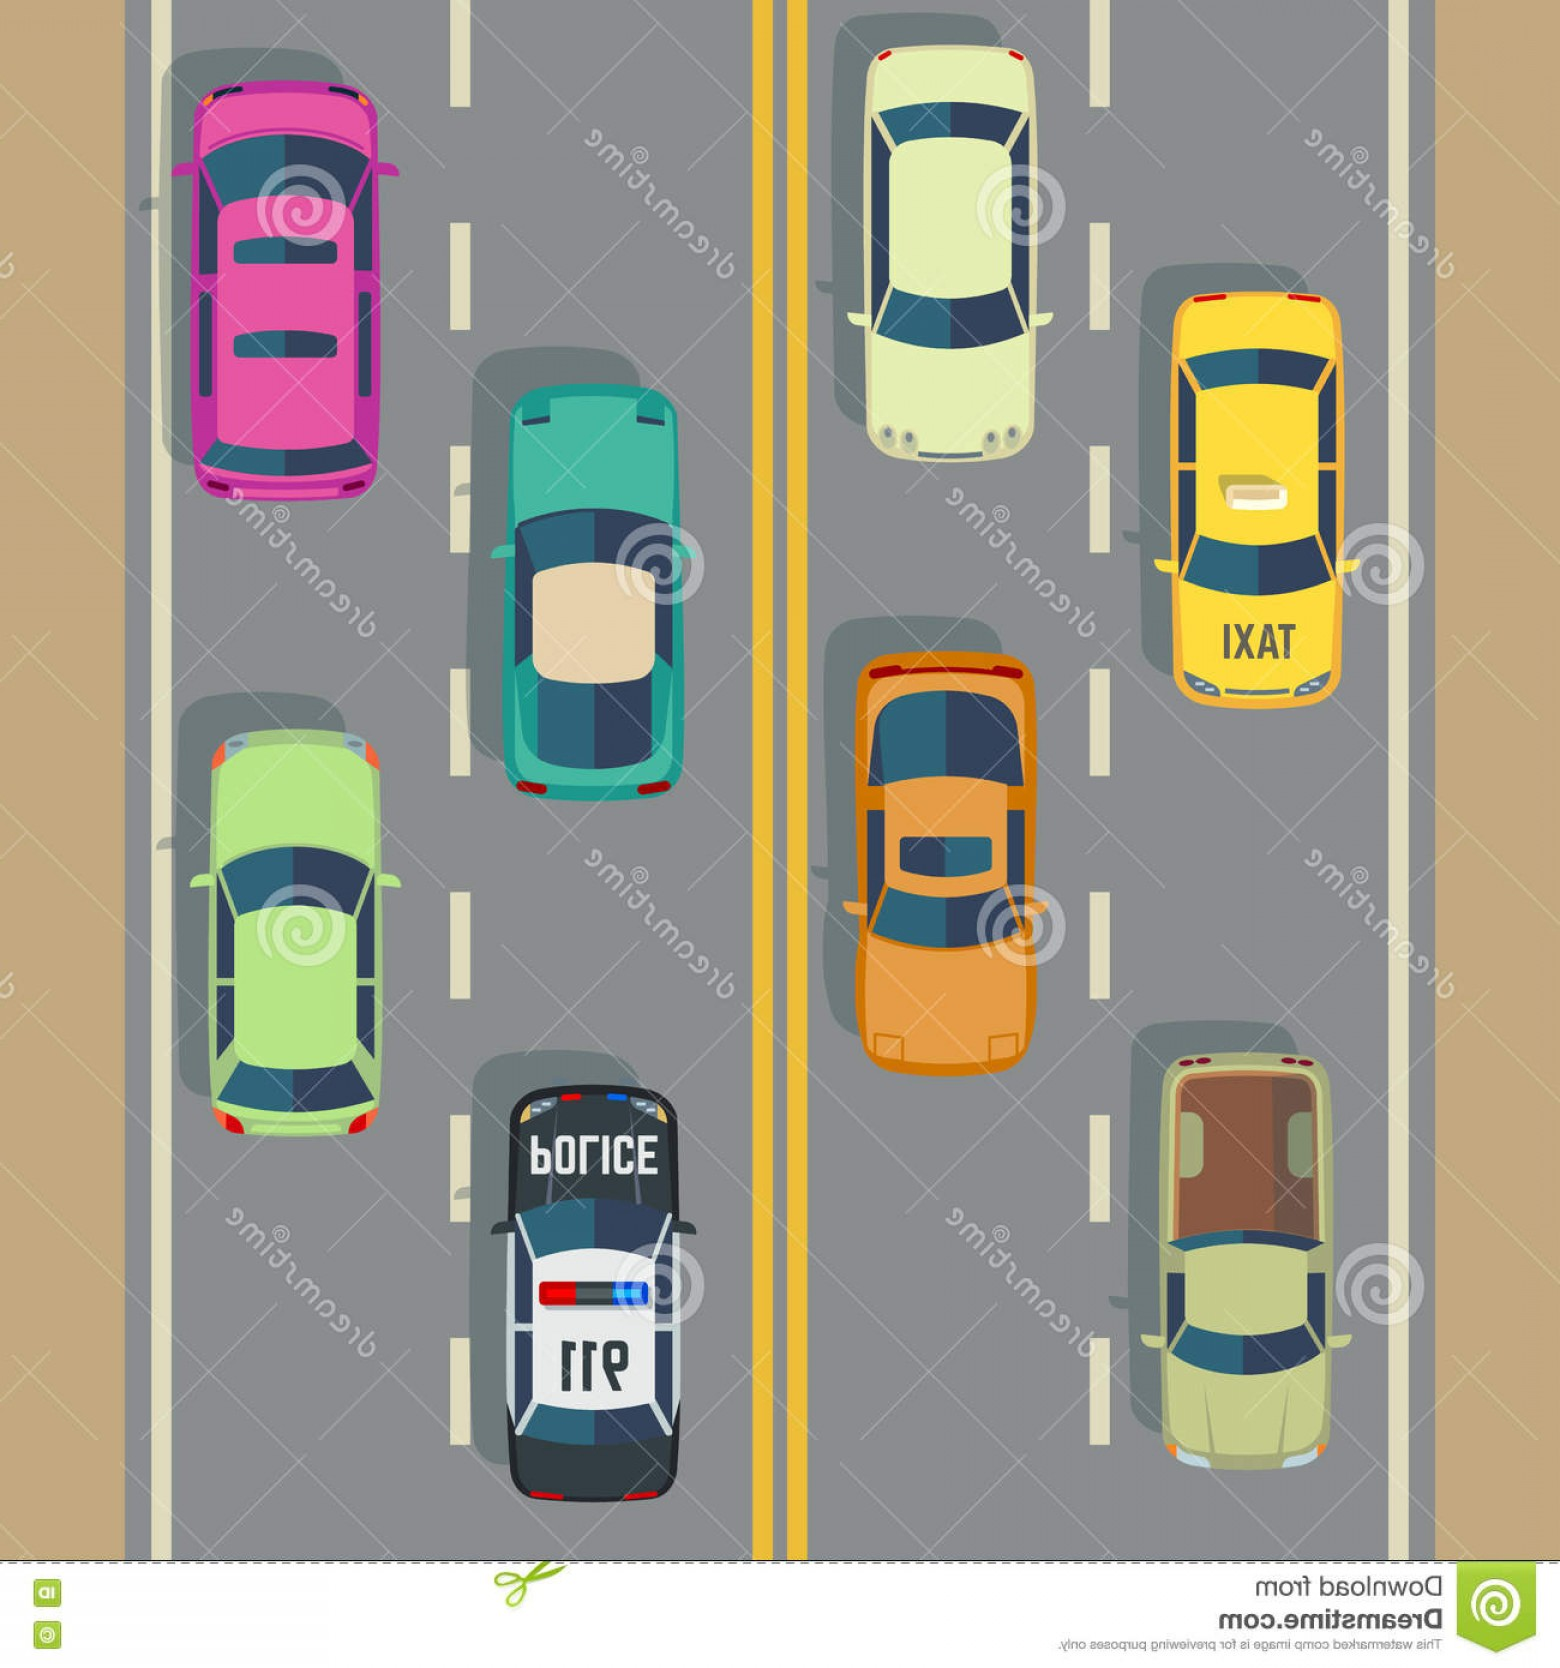 Vector Images Of Cars On Streets: Stock Illustration Highway Traffic Top View Cars Trucks Street Vector Police Car Taxi Illustration To Road Image